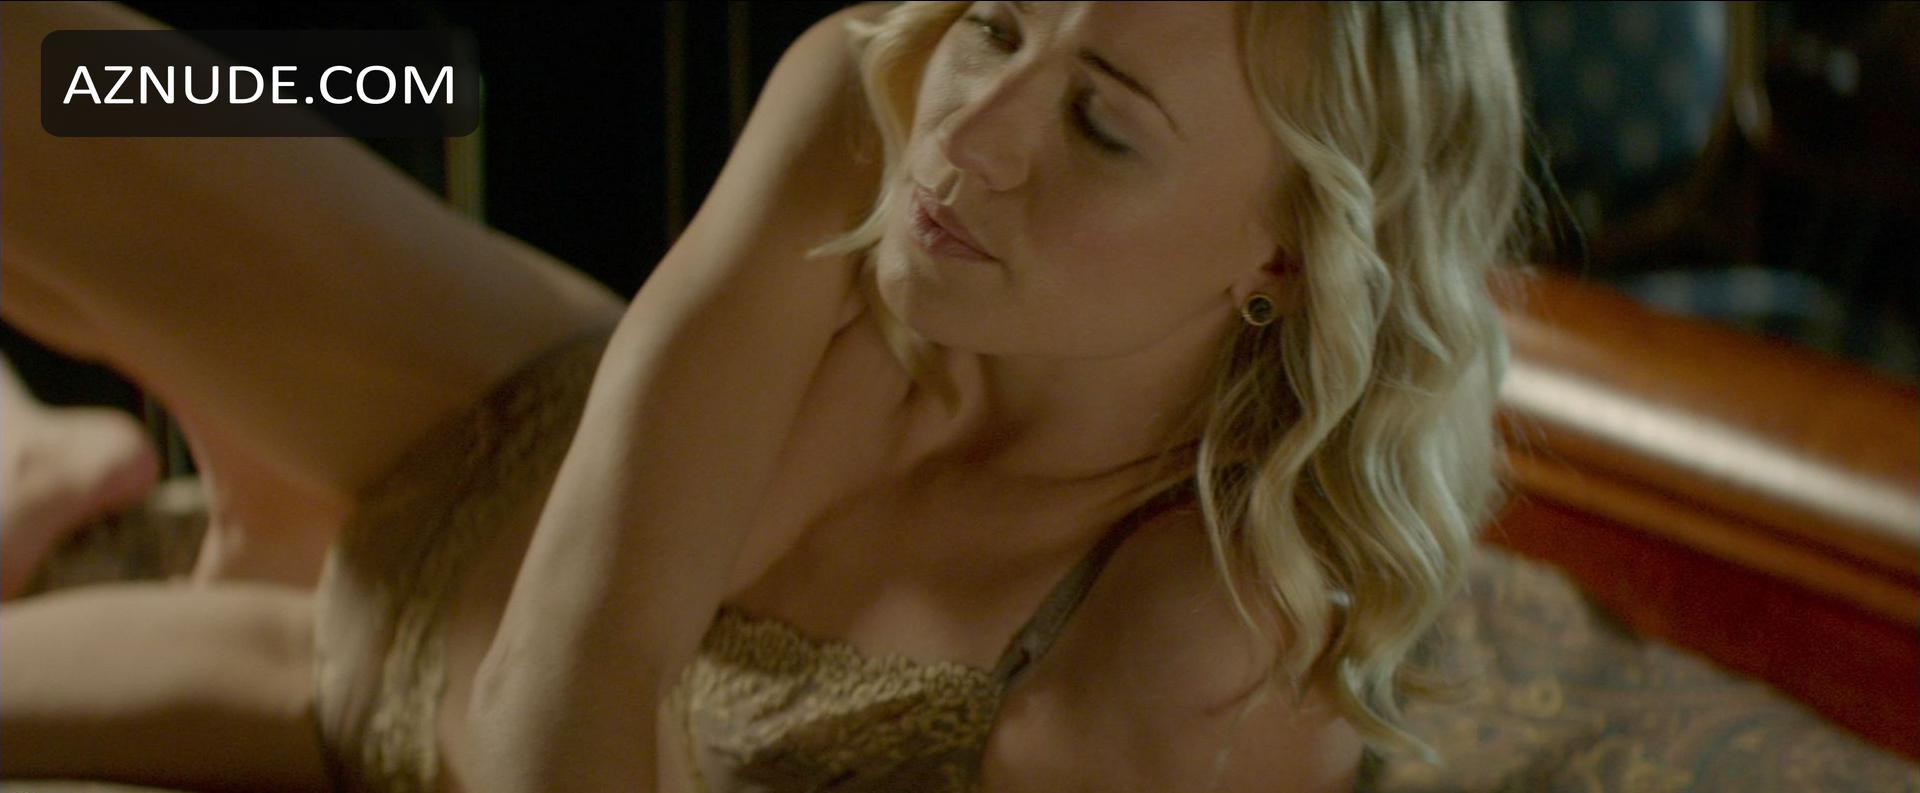 image Yvonne strahovski nude manhattan night 1